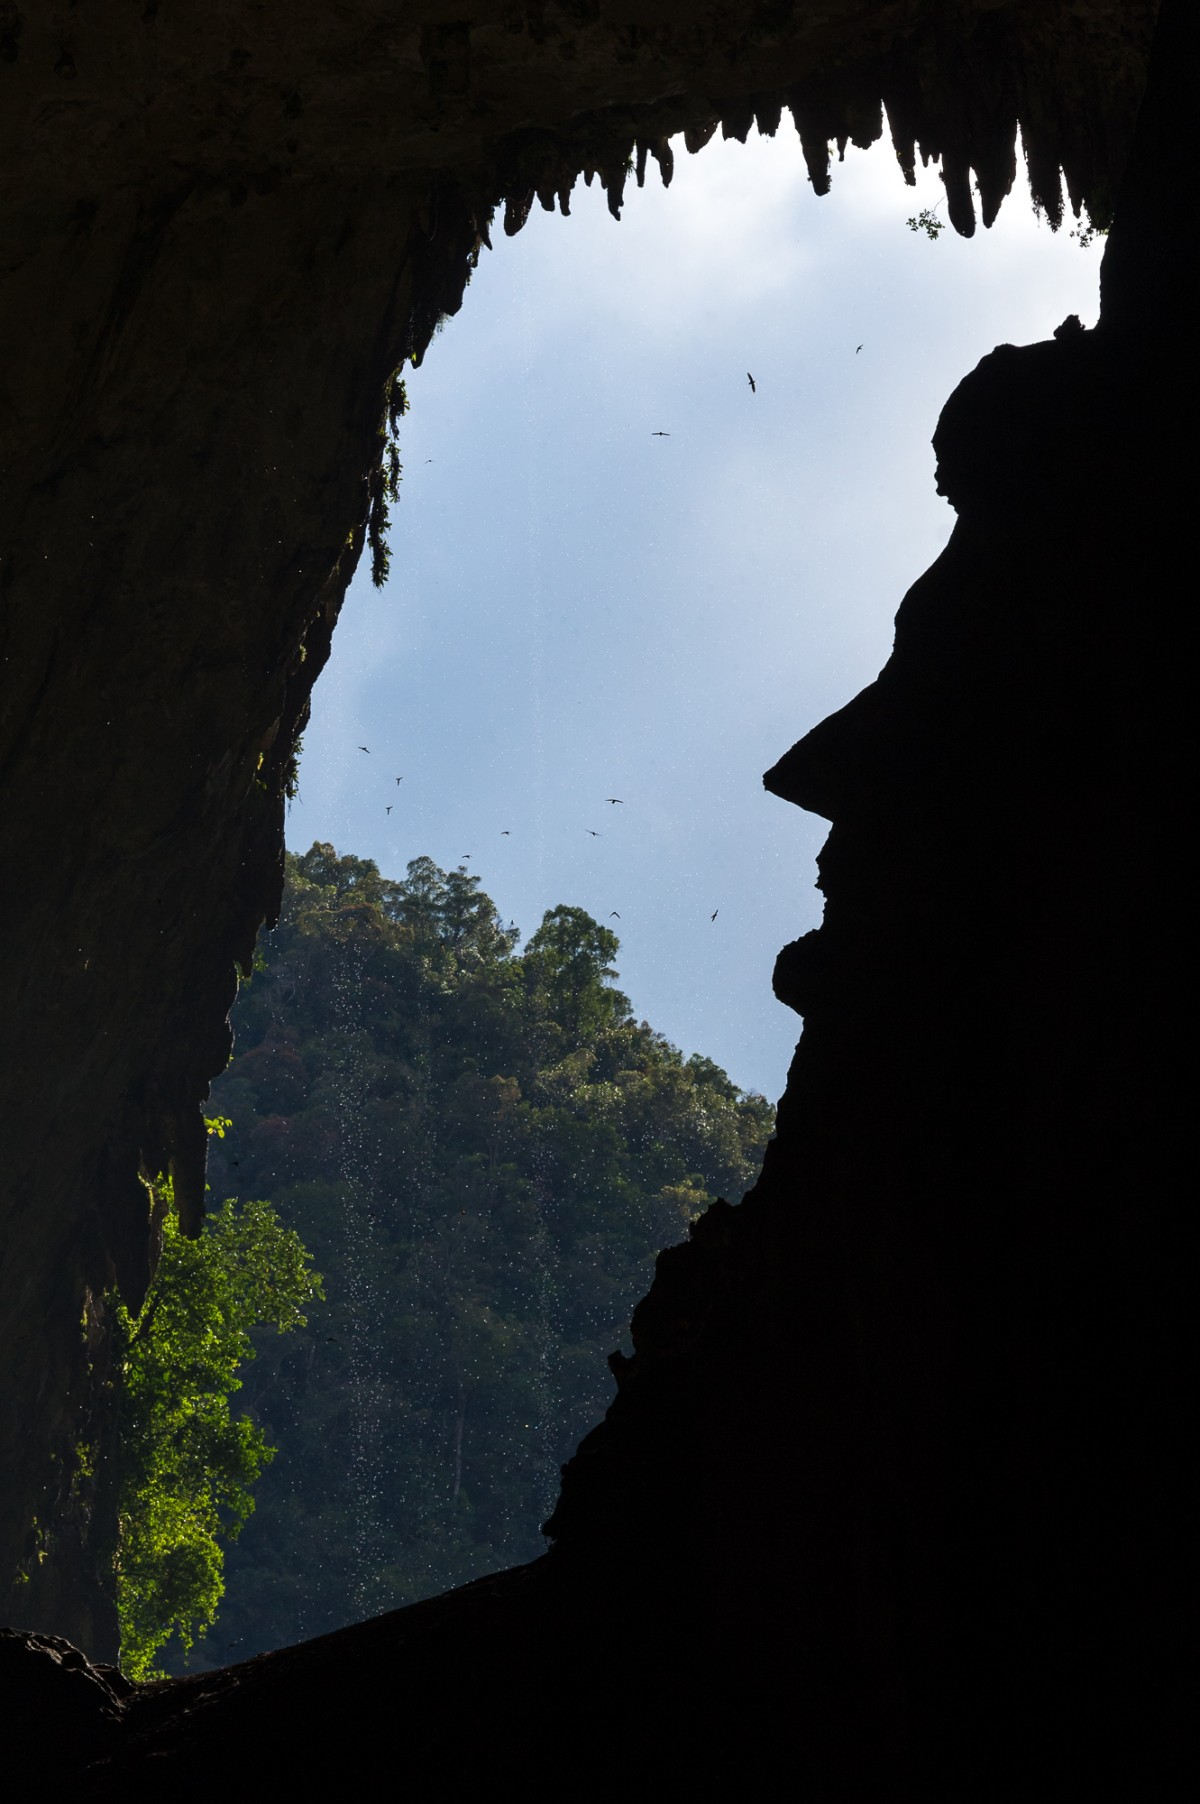 Face structure in a cave